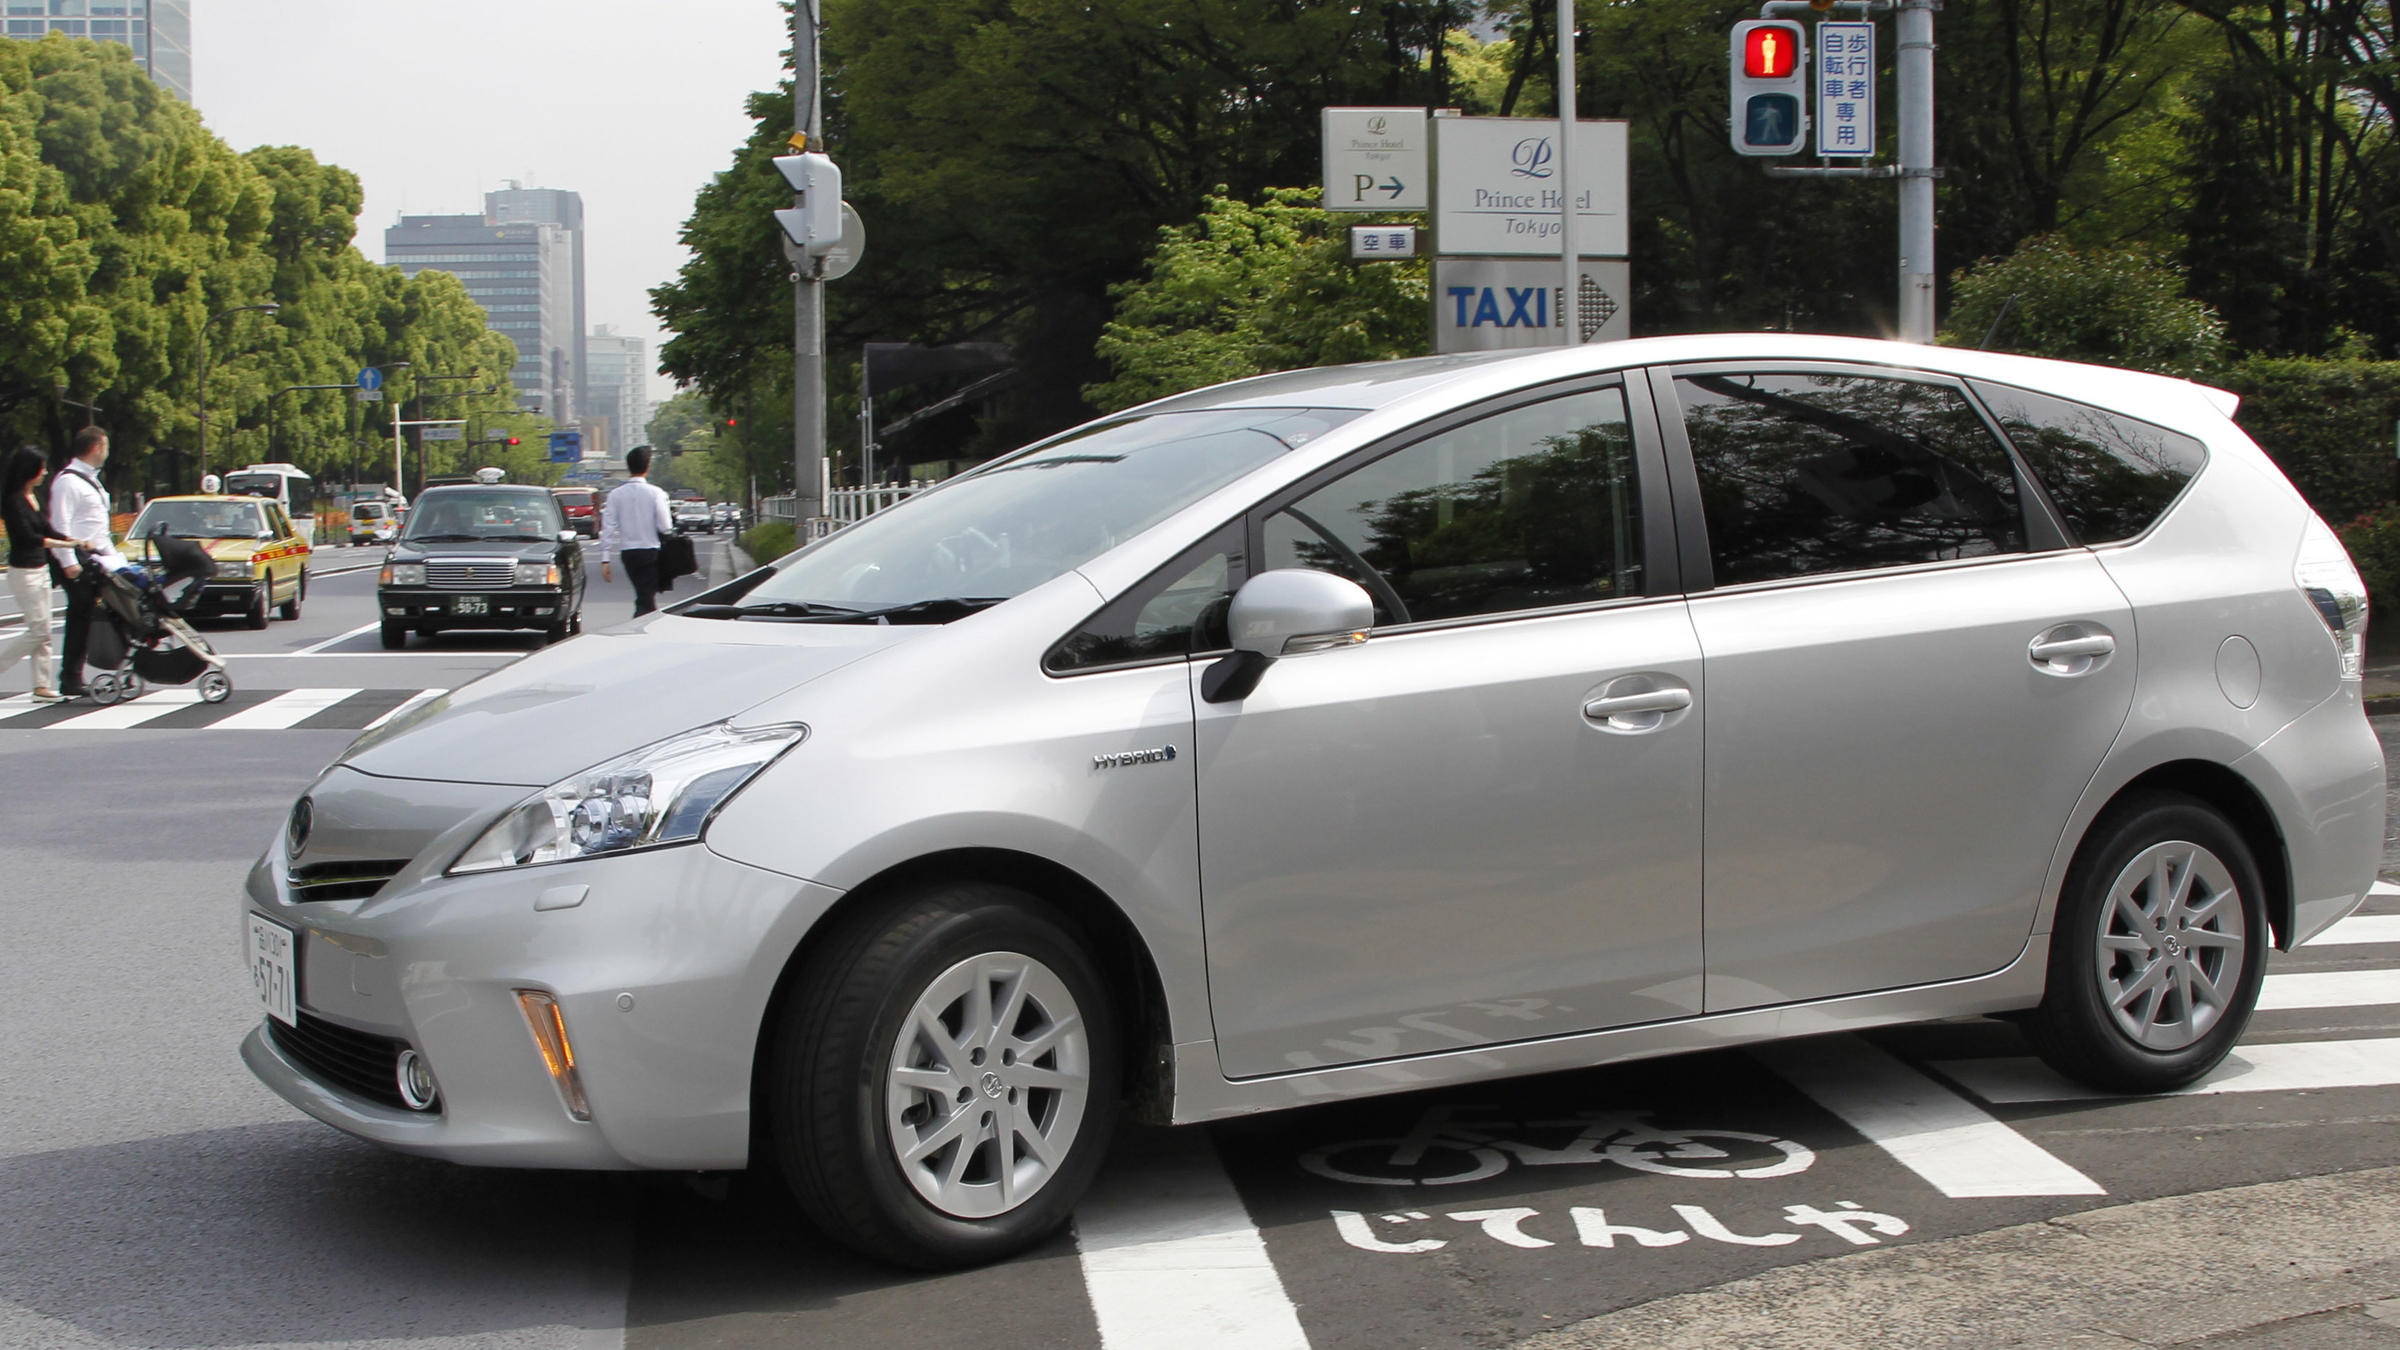 Toyota Says It Will Use A Update To Fix An Issue With Some Prius Models Saying Certain Conditions Could Result In Them Unexpectedly Stalling